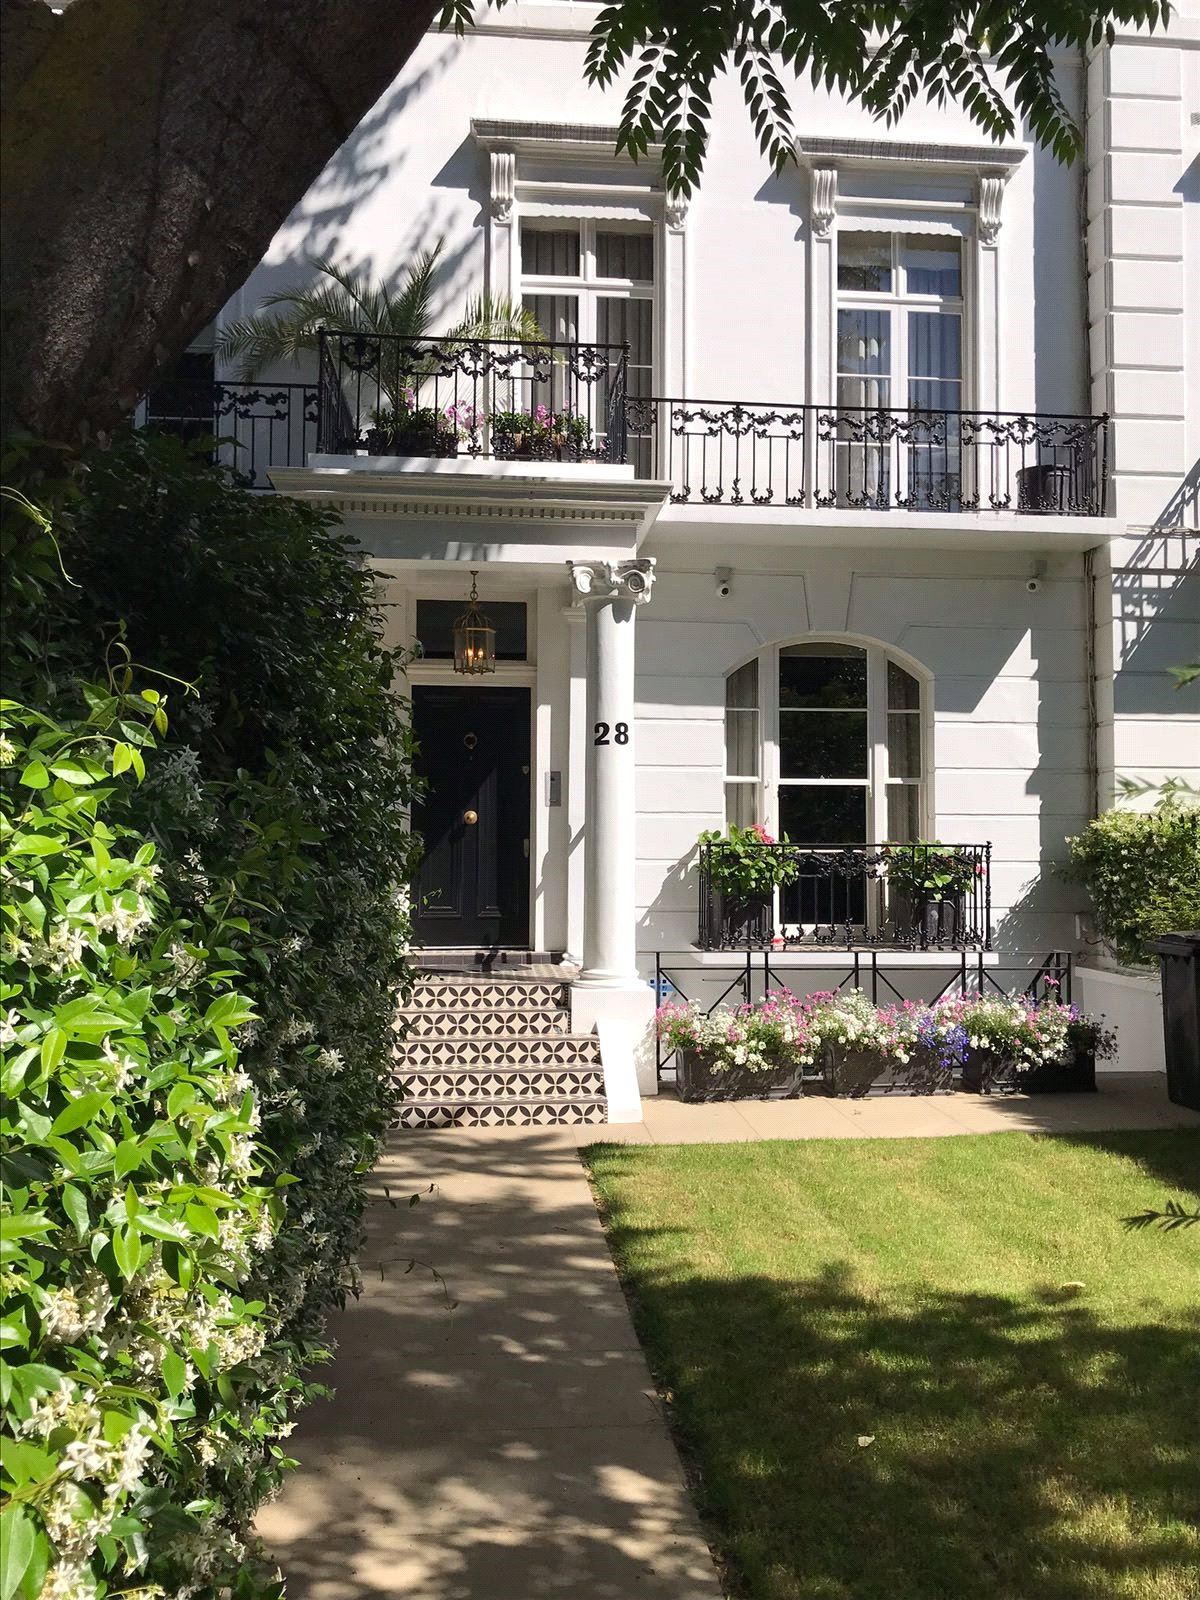 House for Sale at Egerton Crescent, Chelsea, London, SW3 Egerton Crescent, Chelsea, London, SW3